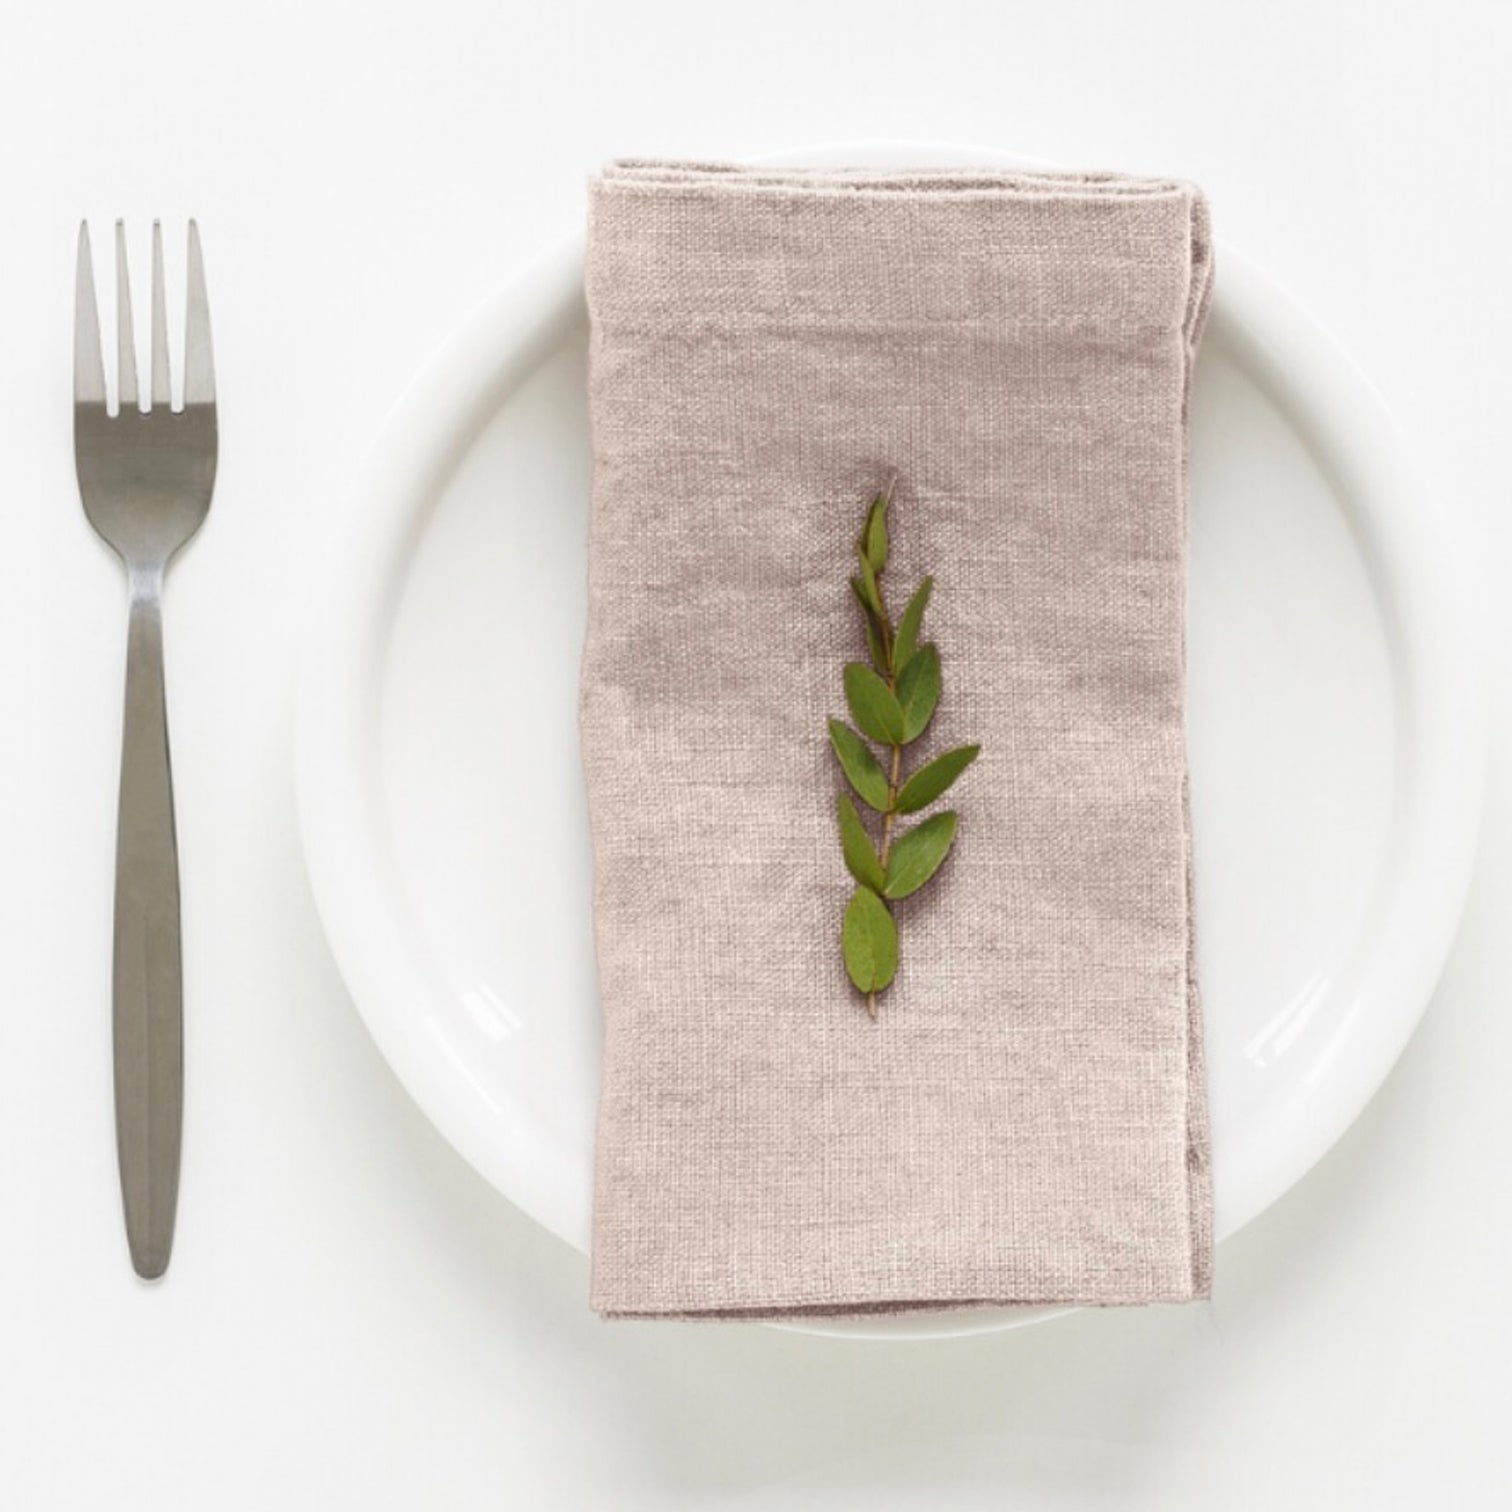 TABLE LINEN - Napkins Set of 4 - GUM BARK